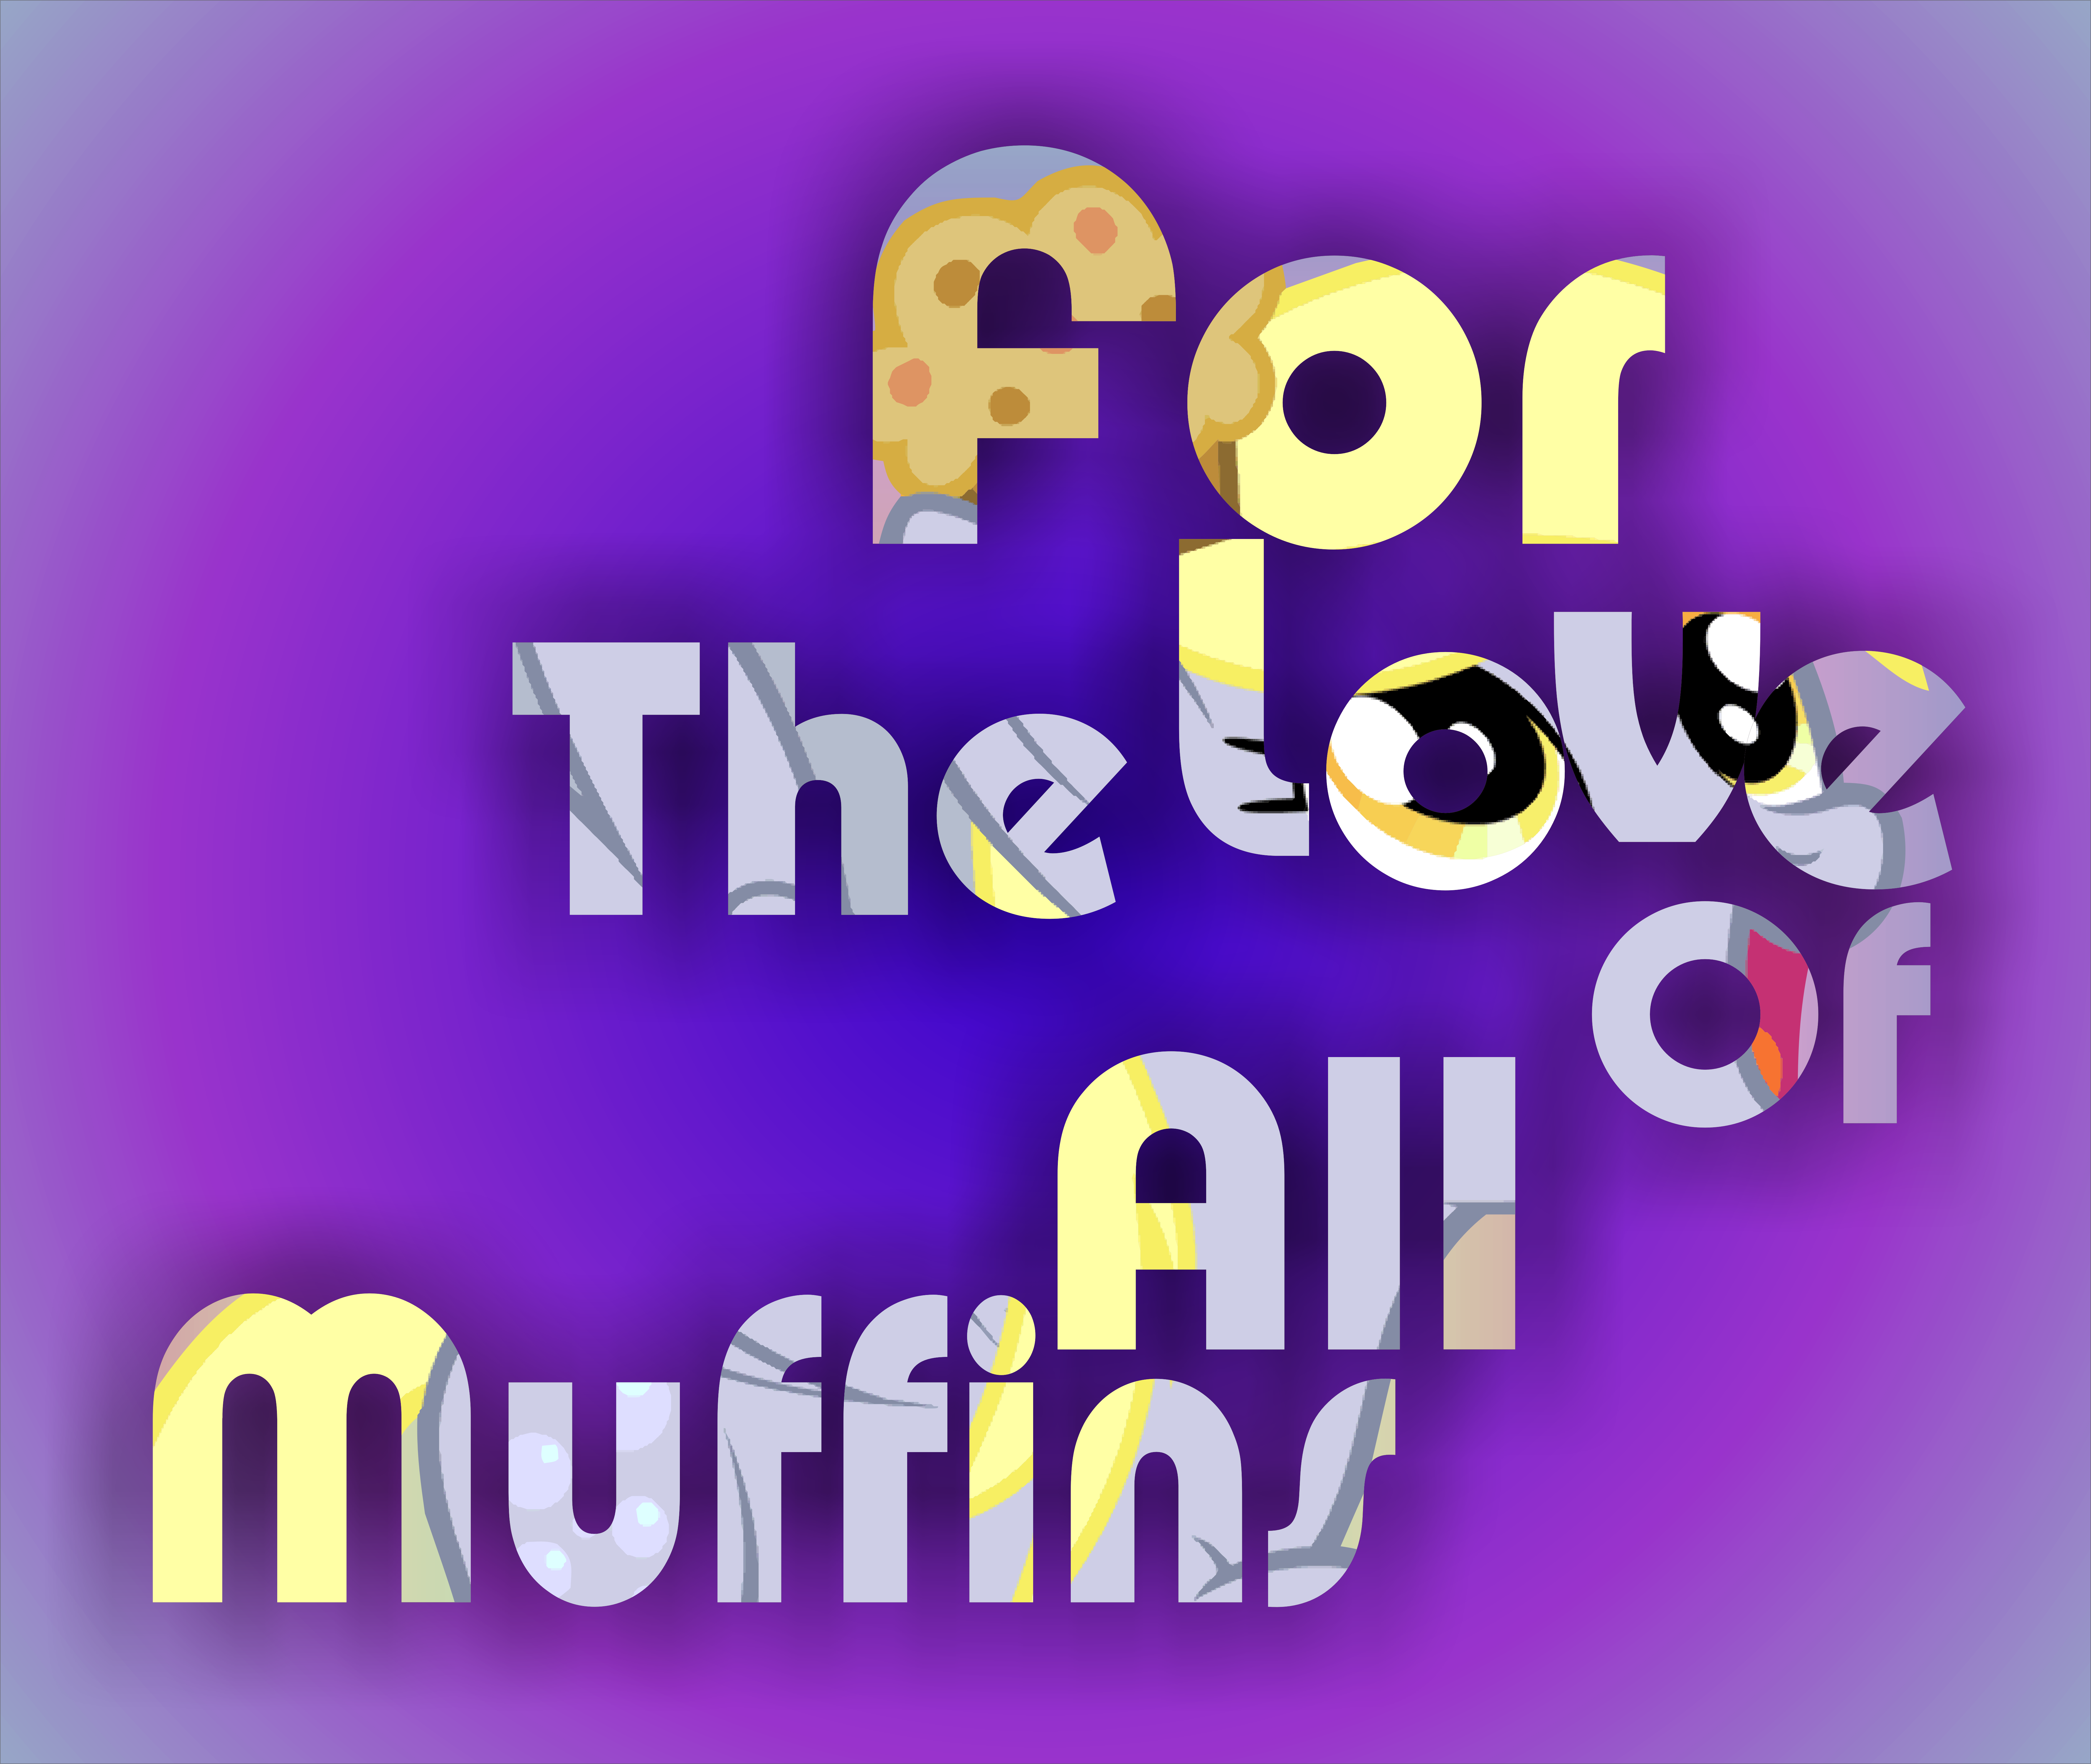 For The Love Of All Muffins by Phoenix0117